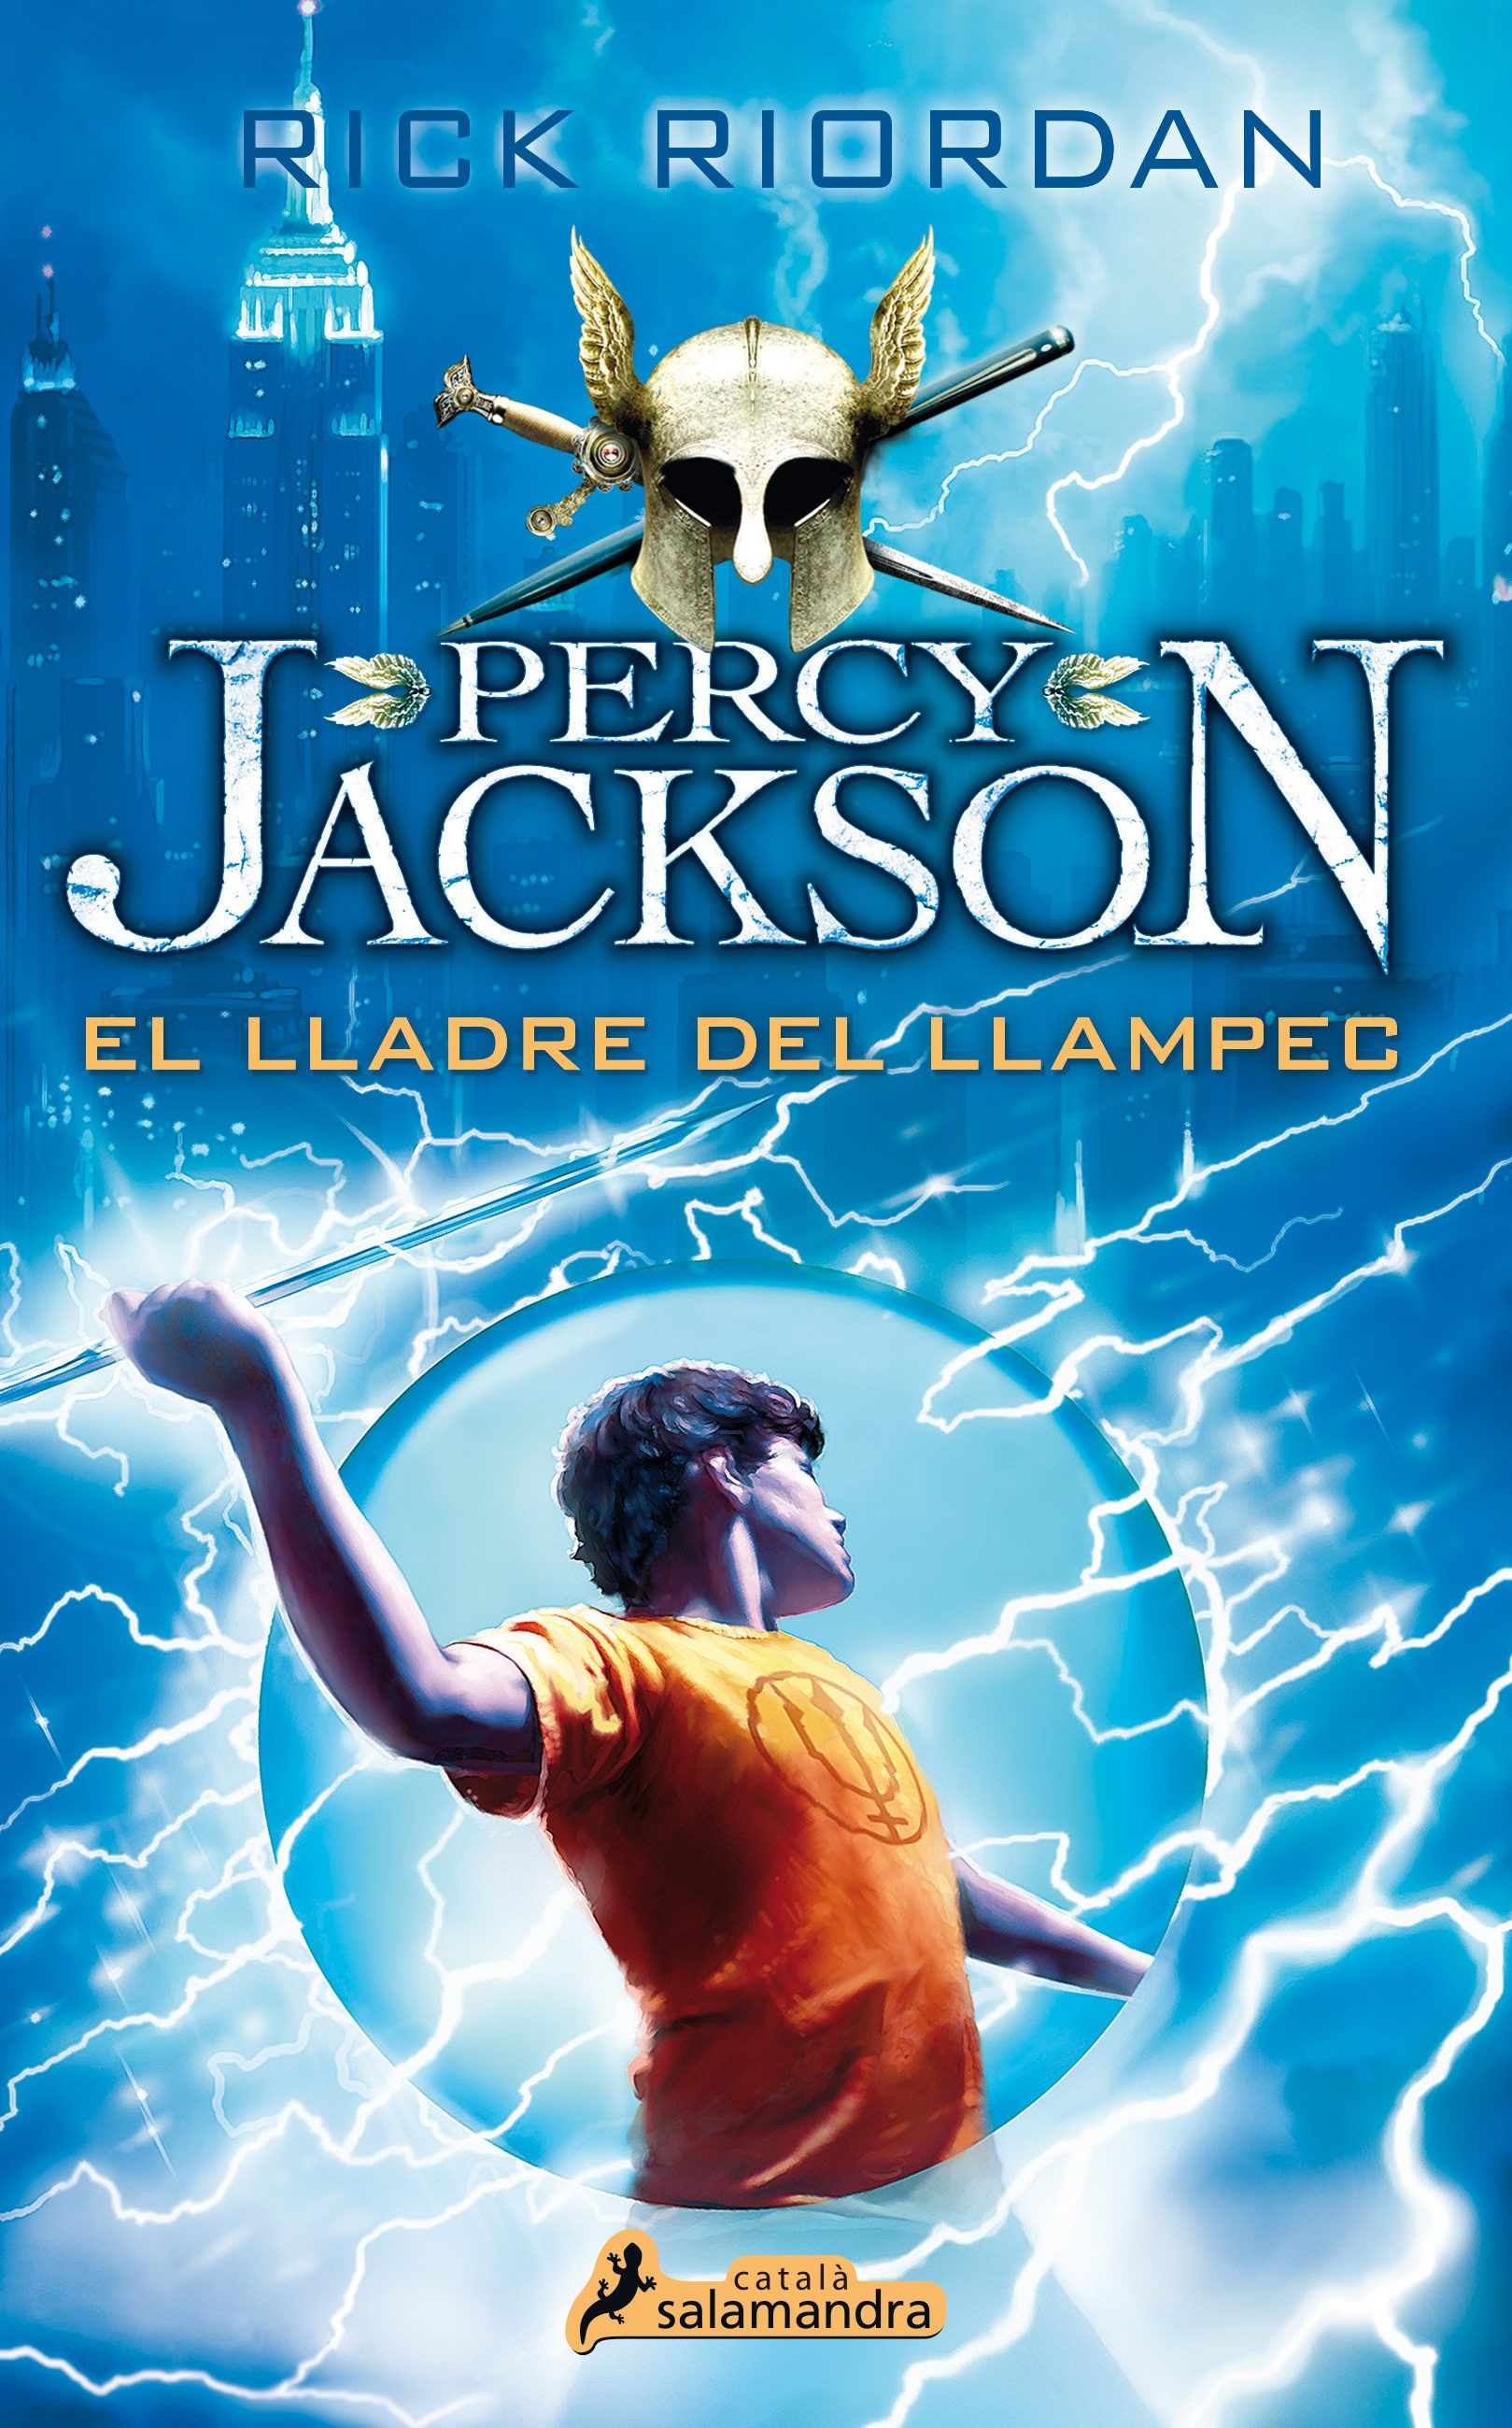 Riordan rick percy jackson el lladre del llampec salamandra buy percy jackson and the lightning thief book by rick riordan from waterstones today click and collect from your local waterstones or get free uk fandeluxe Images